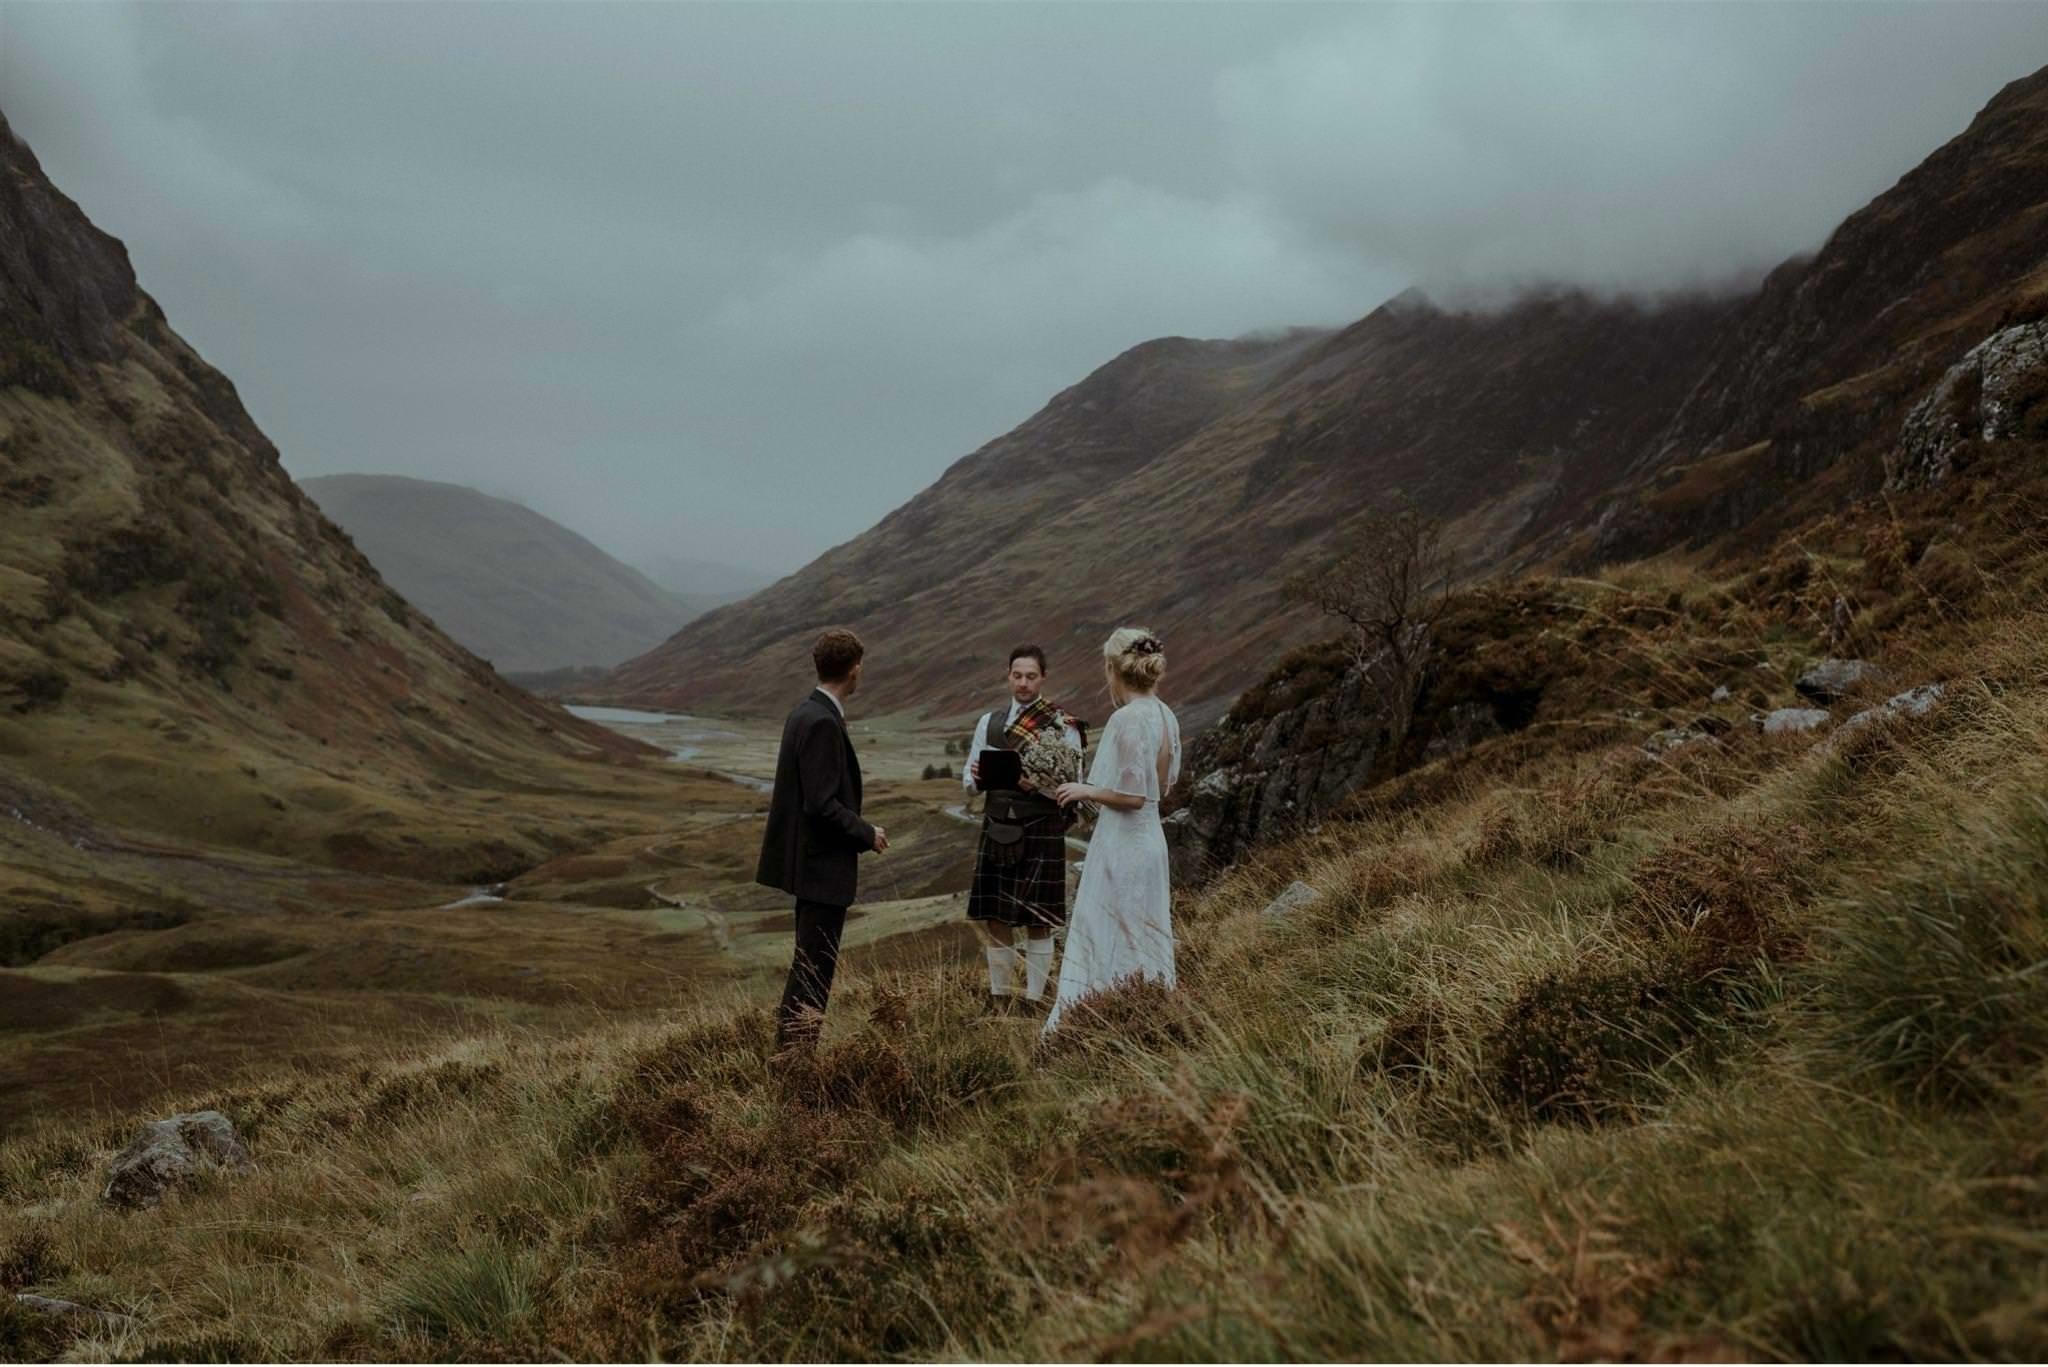 A Glencoe elopement wedding for two in Scotland